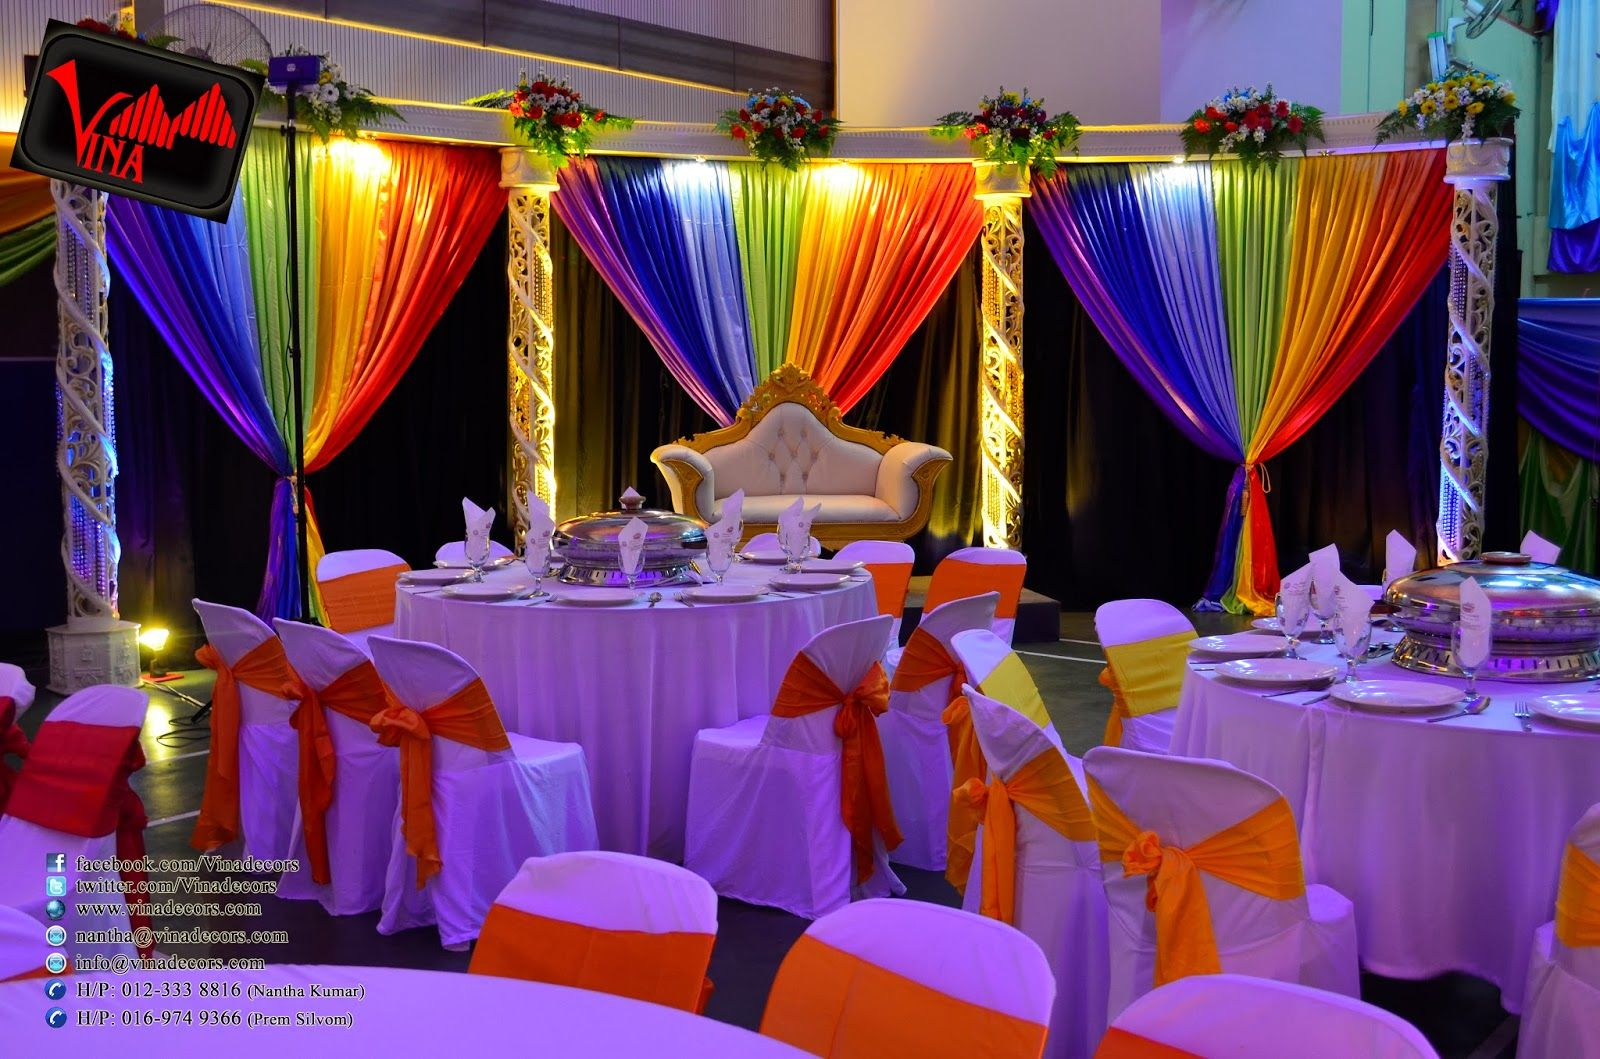 Rainbow wedding decorations on pinterest for Art decoration ideas